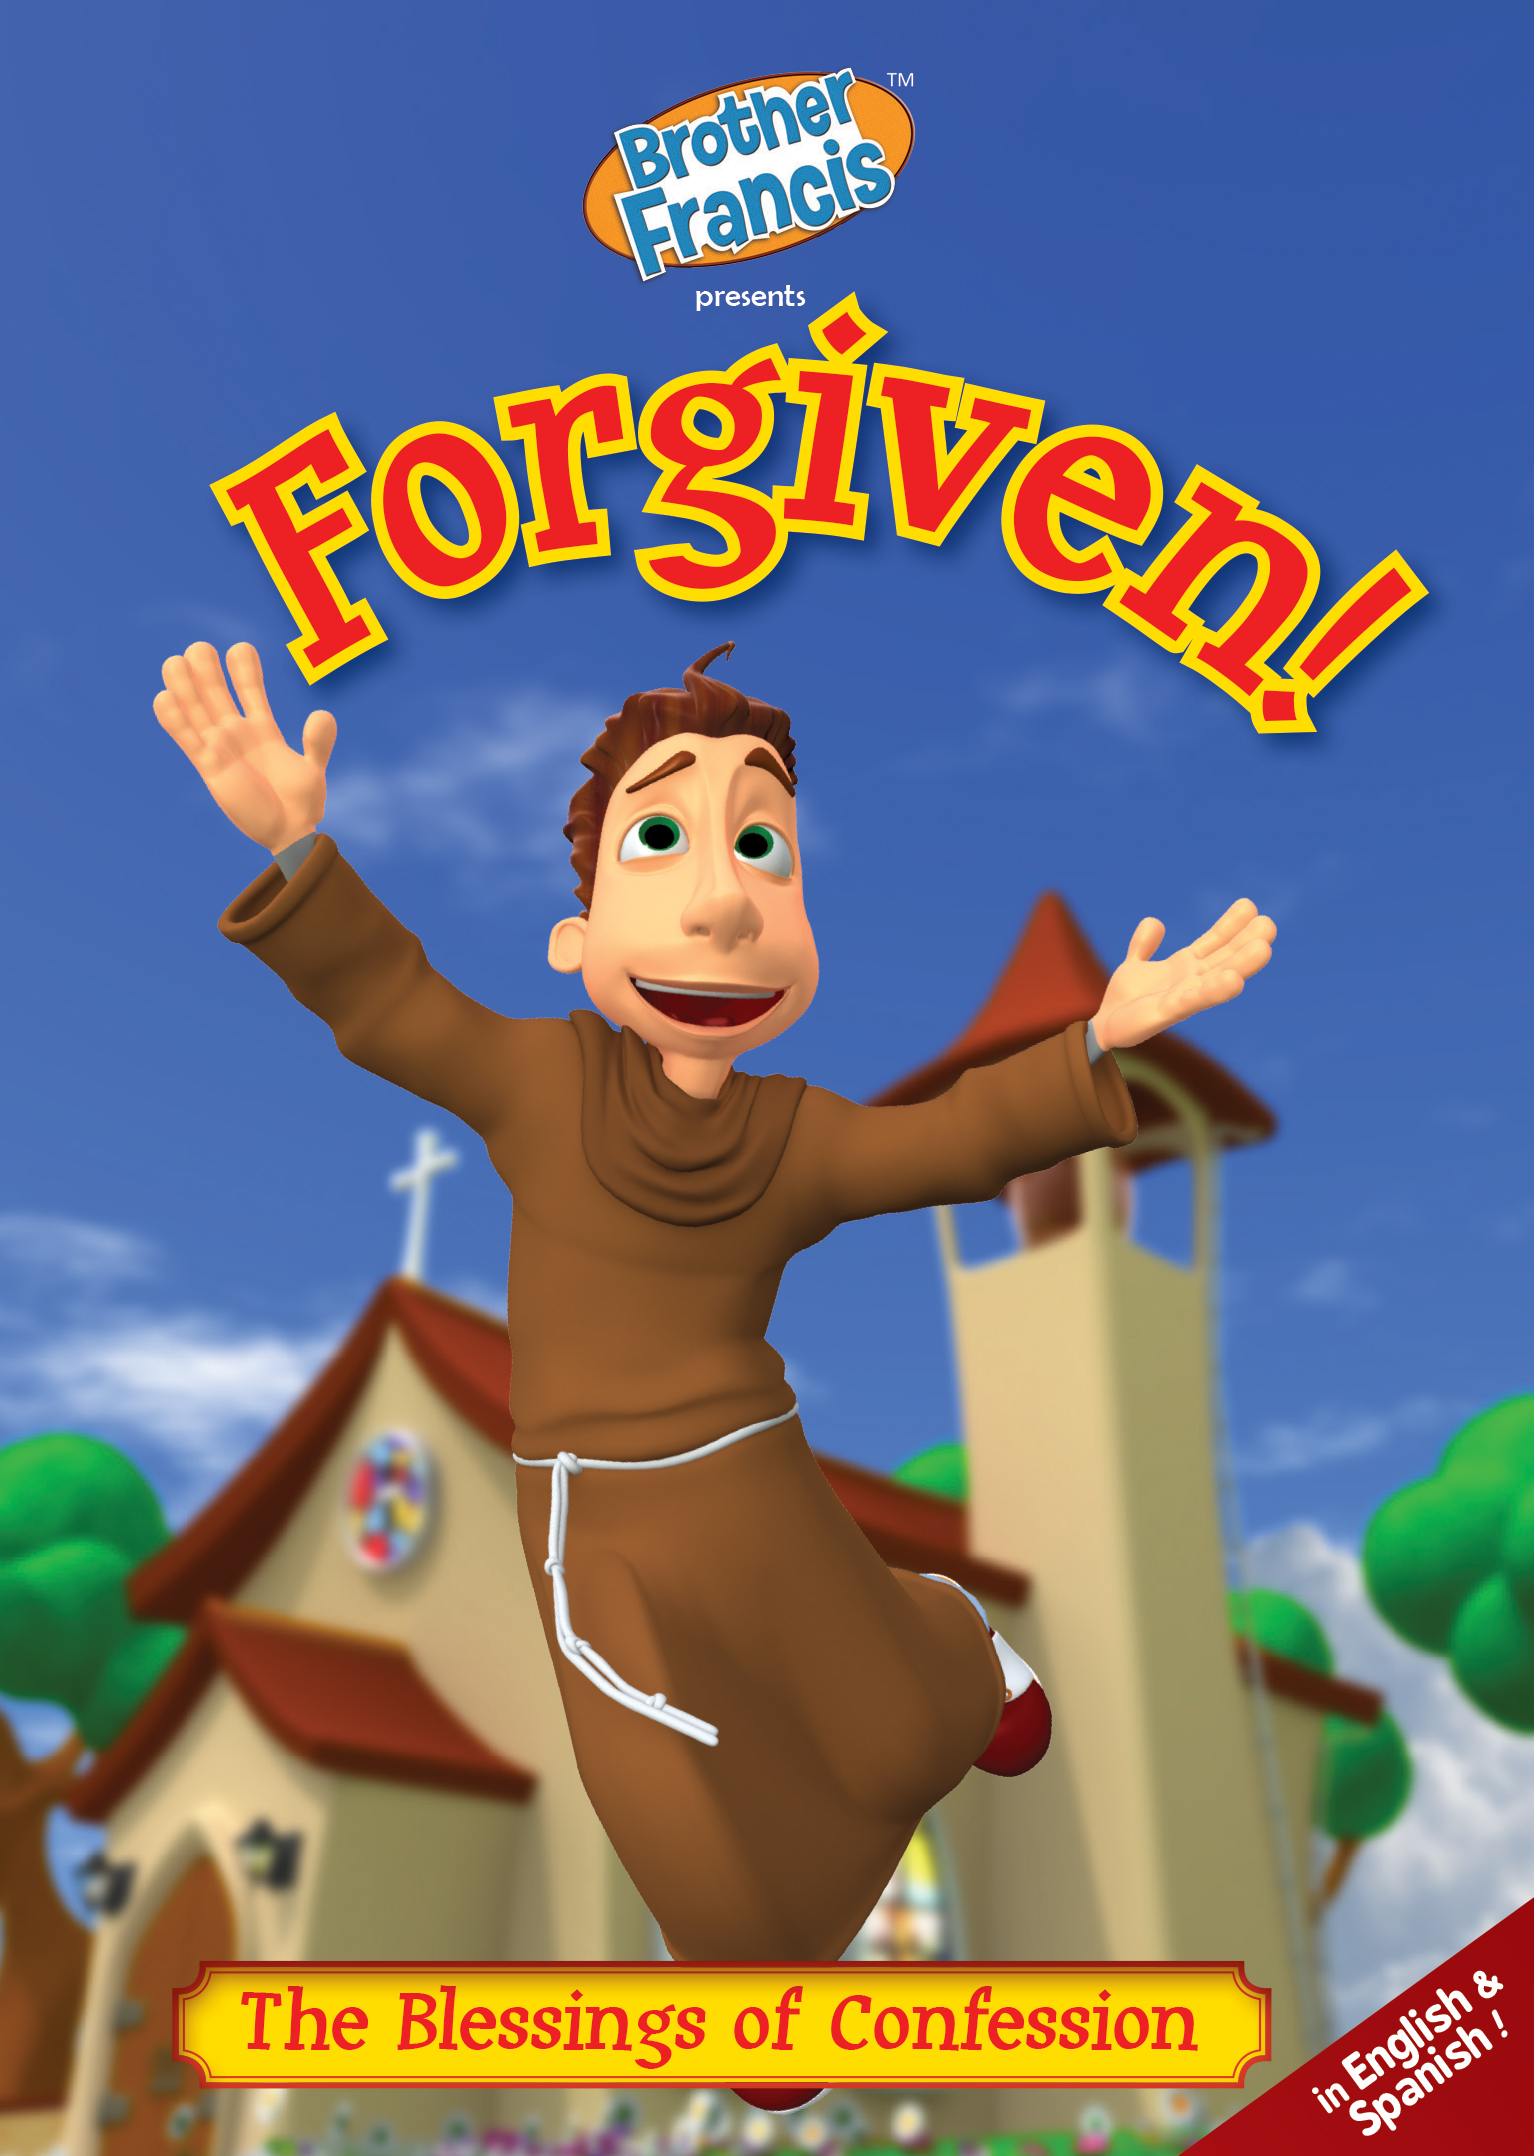 Brother Francis Episode 4: Forgiven